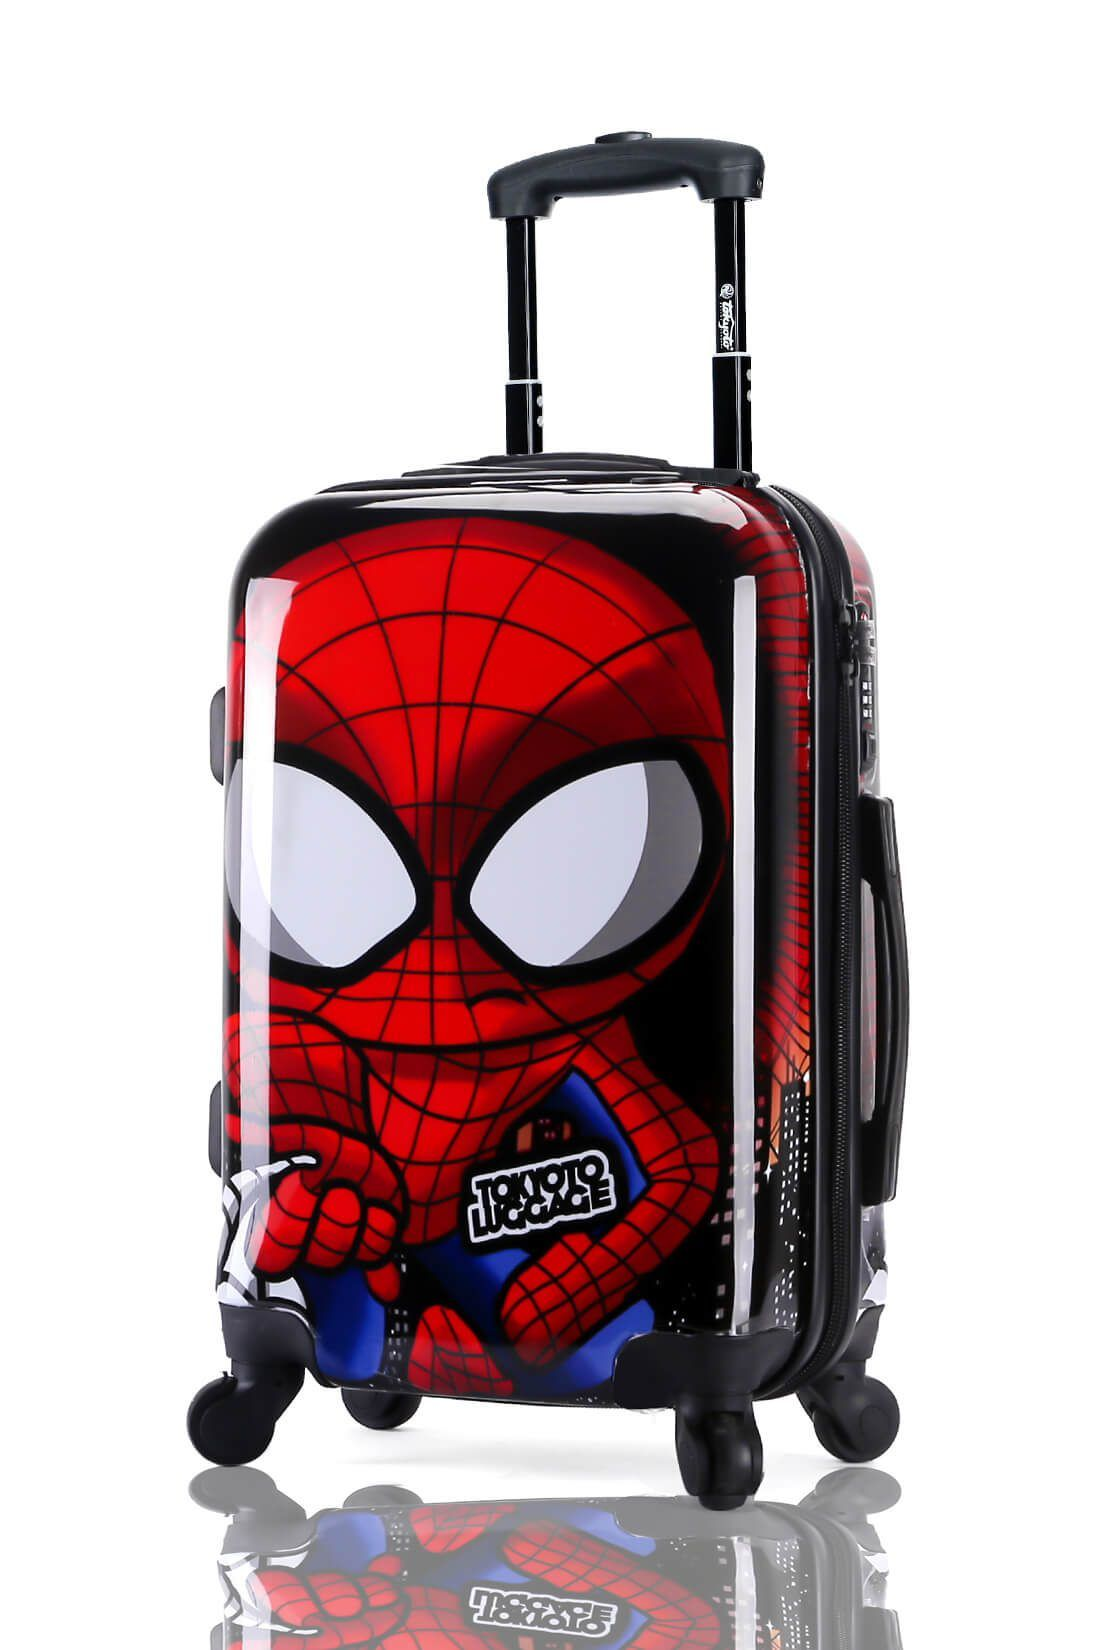 Valise Online Cabine Trolley Enfant TOKYOTO LUGGAGE Modelle SPIDER BOY 5